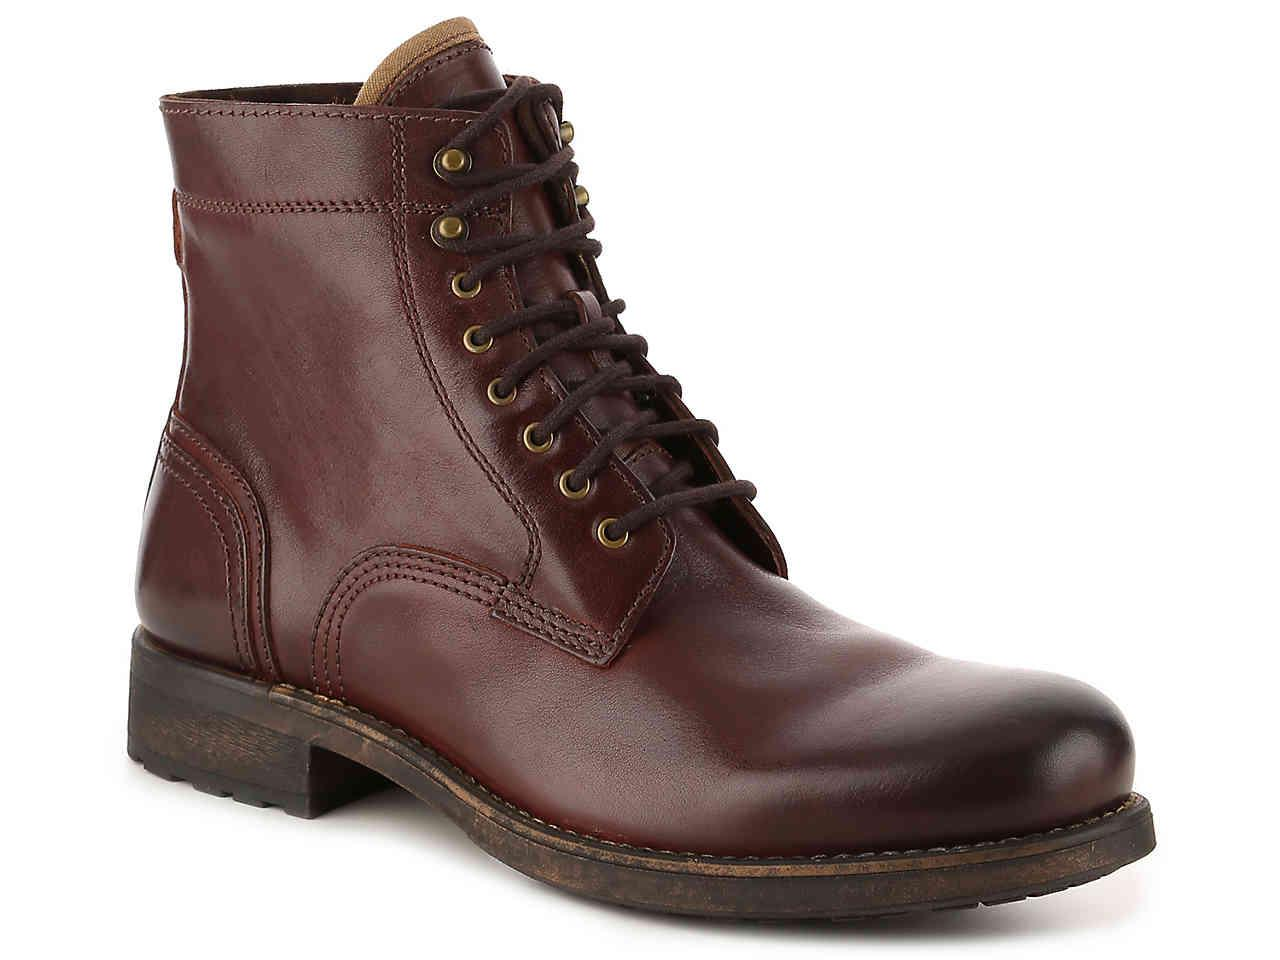 e59f8ae57b0 ALDO Etausen Boot in Brown for Men - Lyst